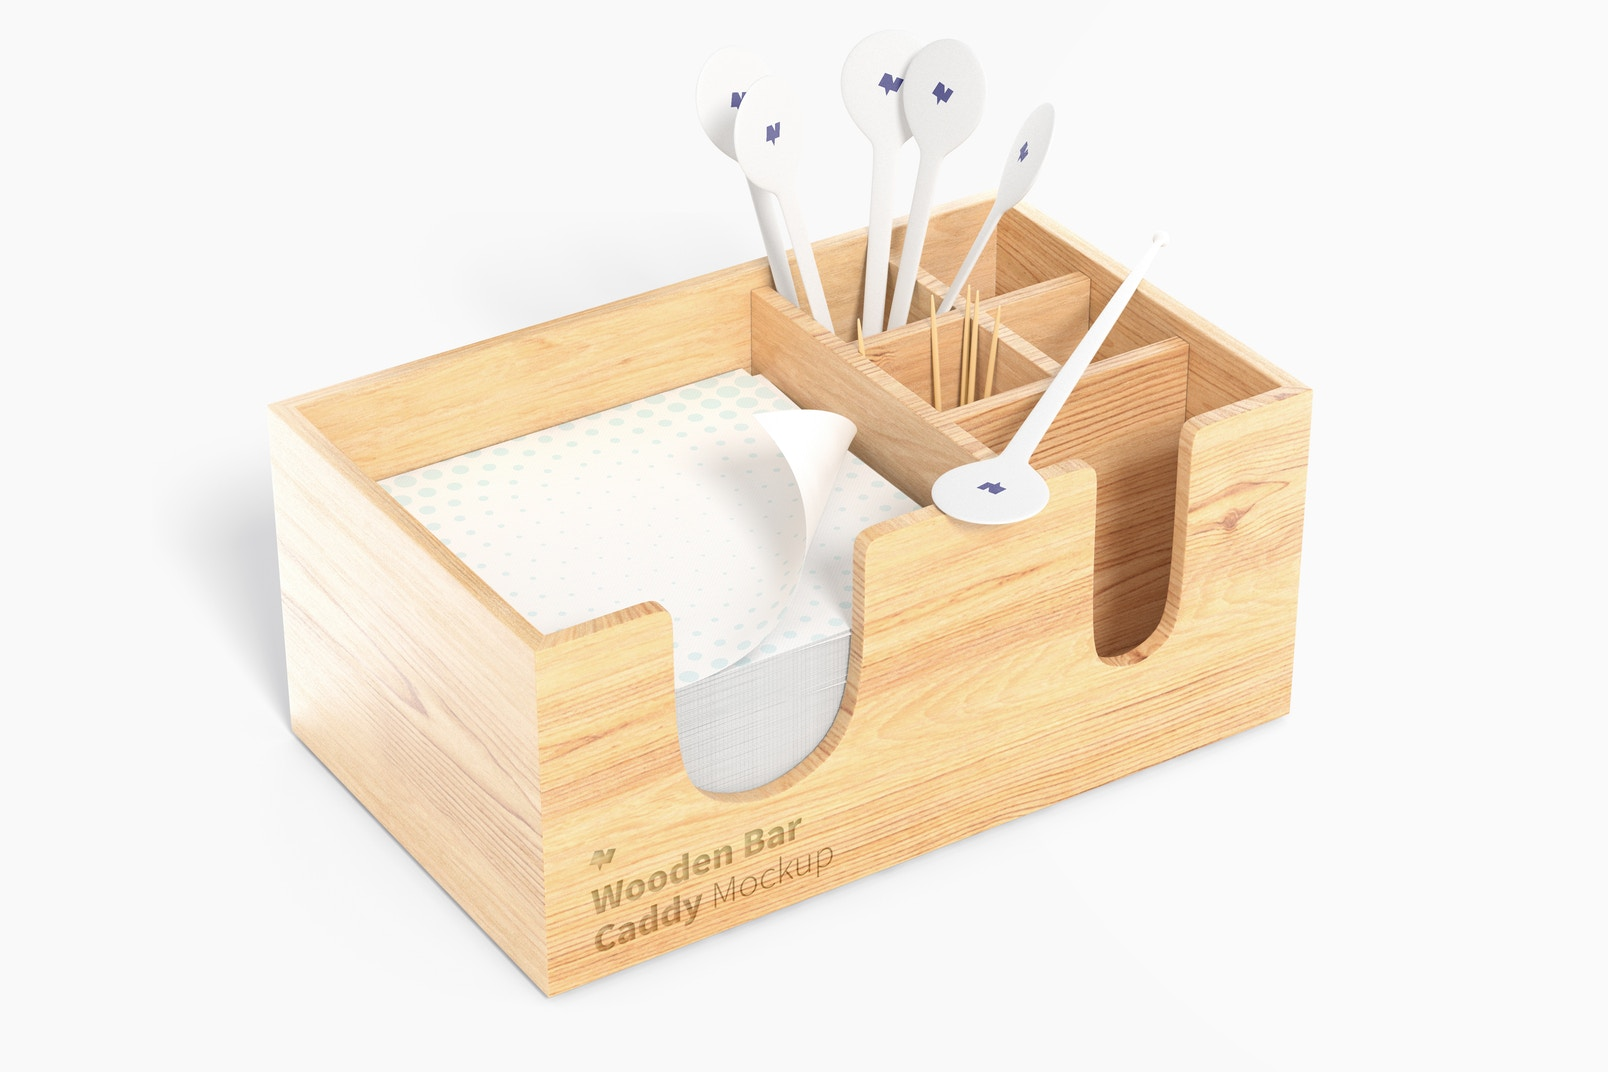 Wooden Bar Caddy Mockup, Left View